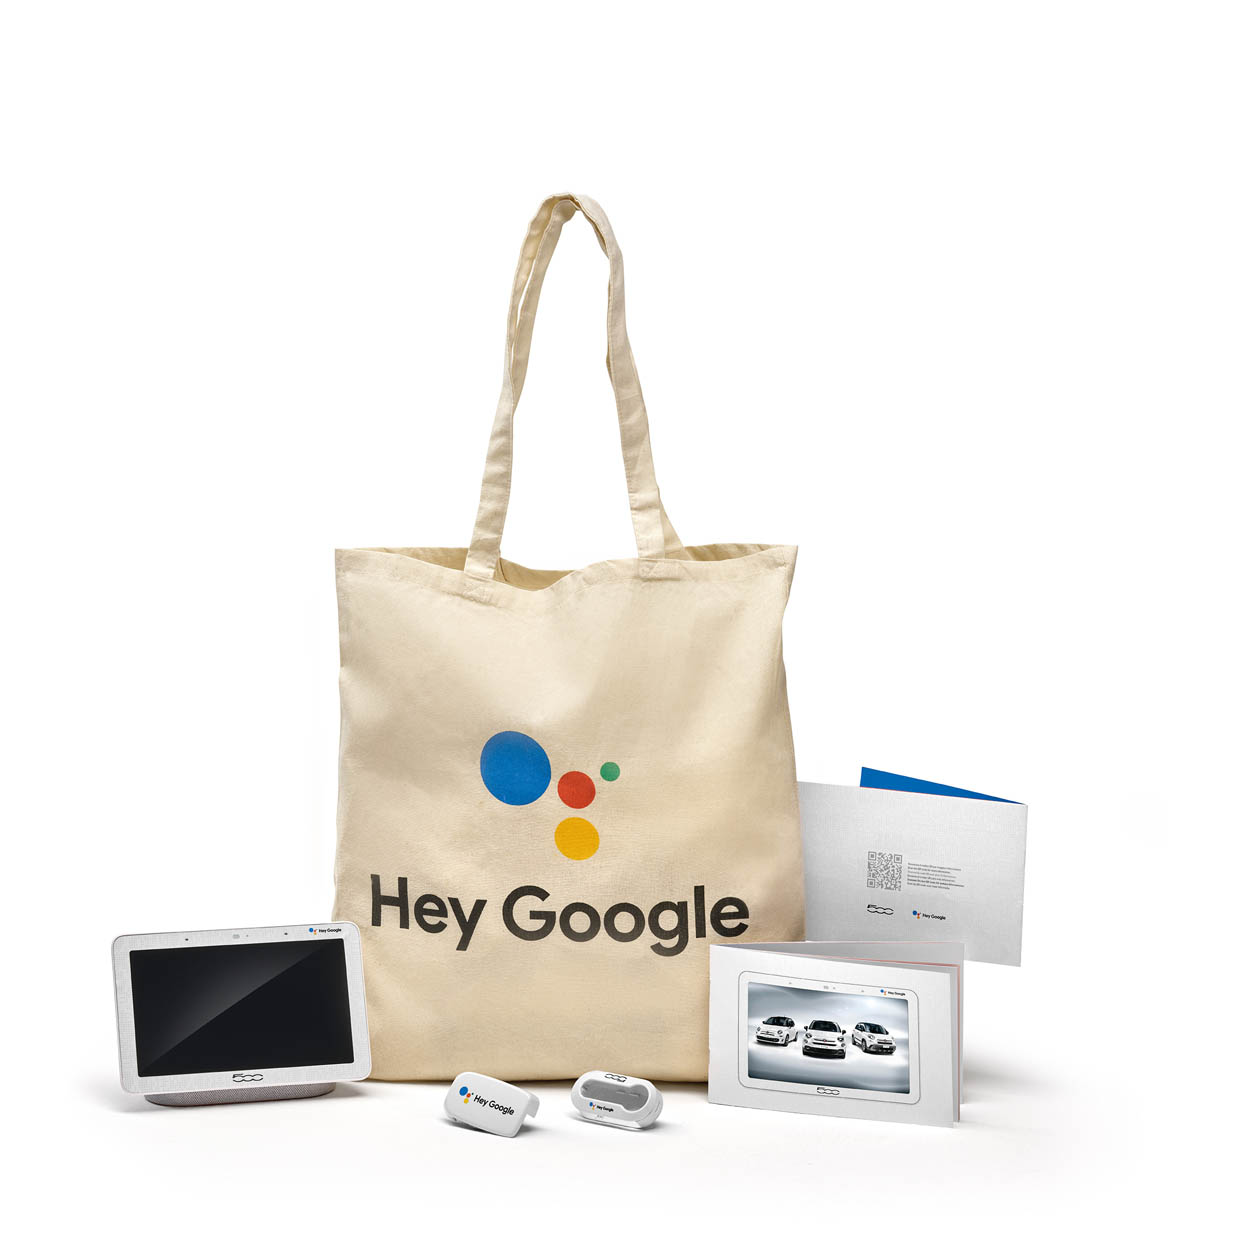 fiat 500 hey google goodie bag